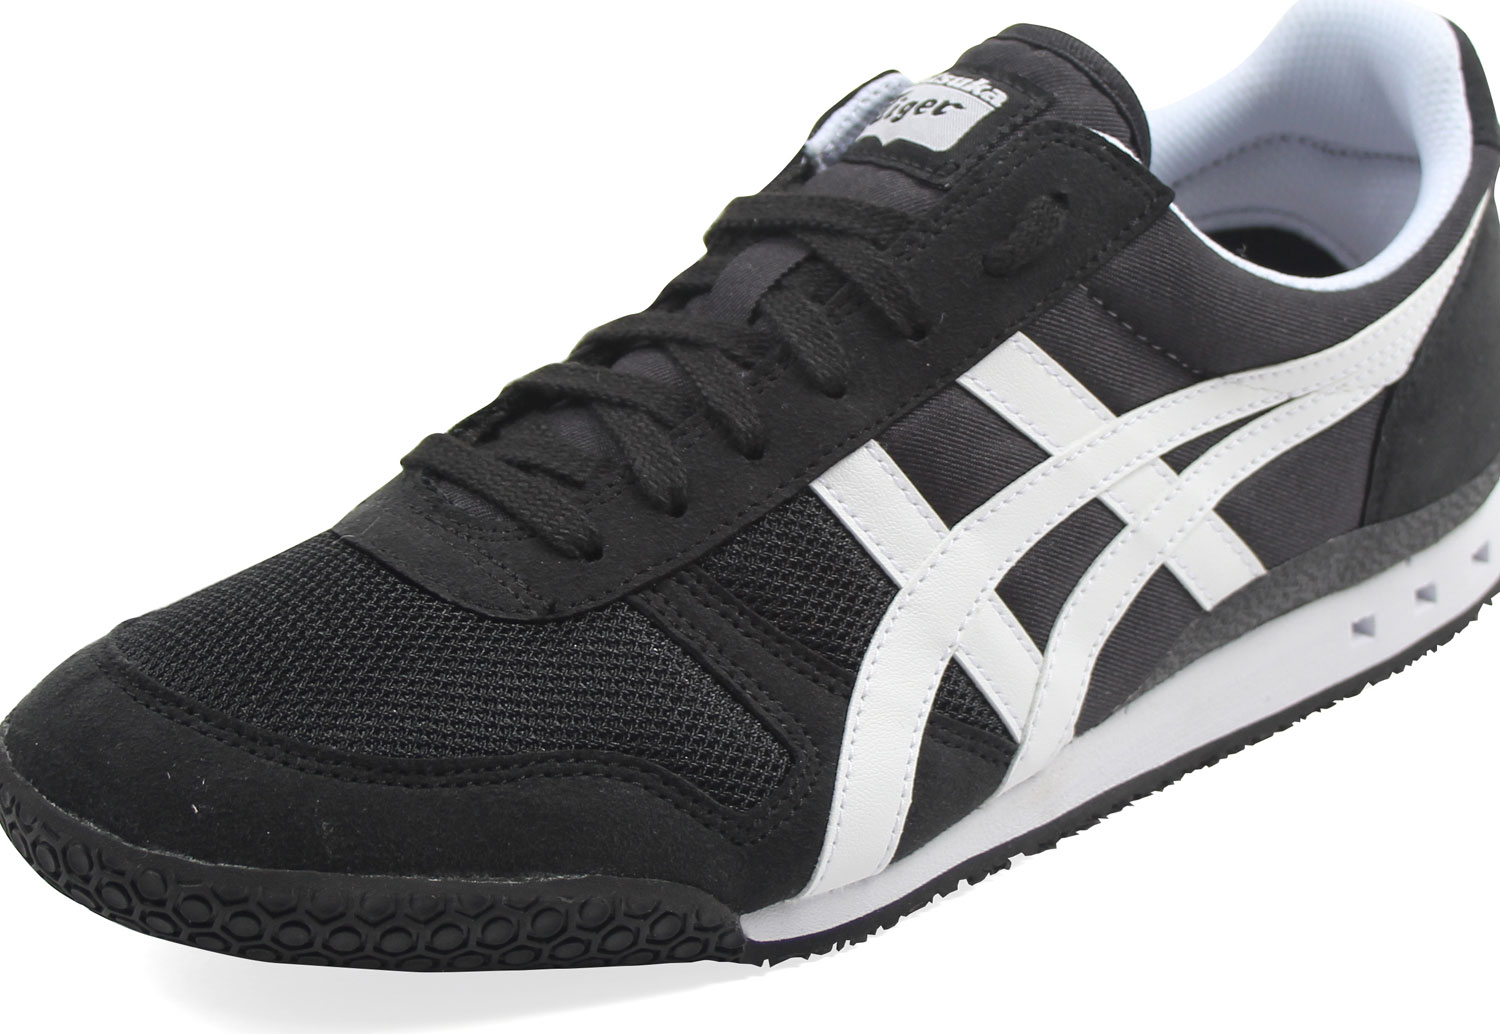 detailed look e2613 86ff2 ASICS - Mens Onitsuka Tiger Ultimate 81 Shoes